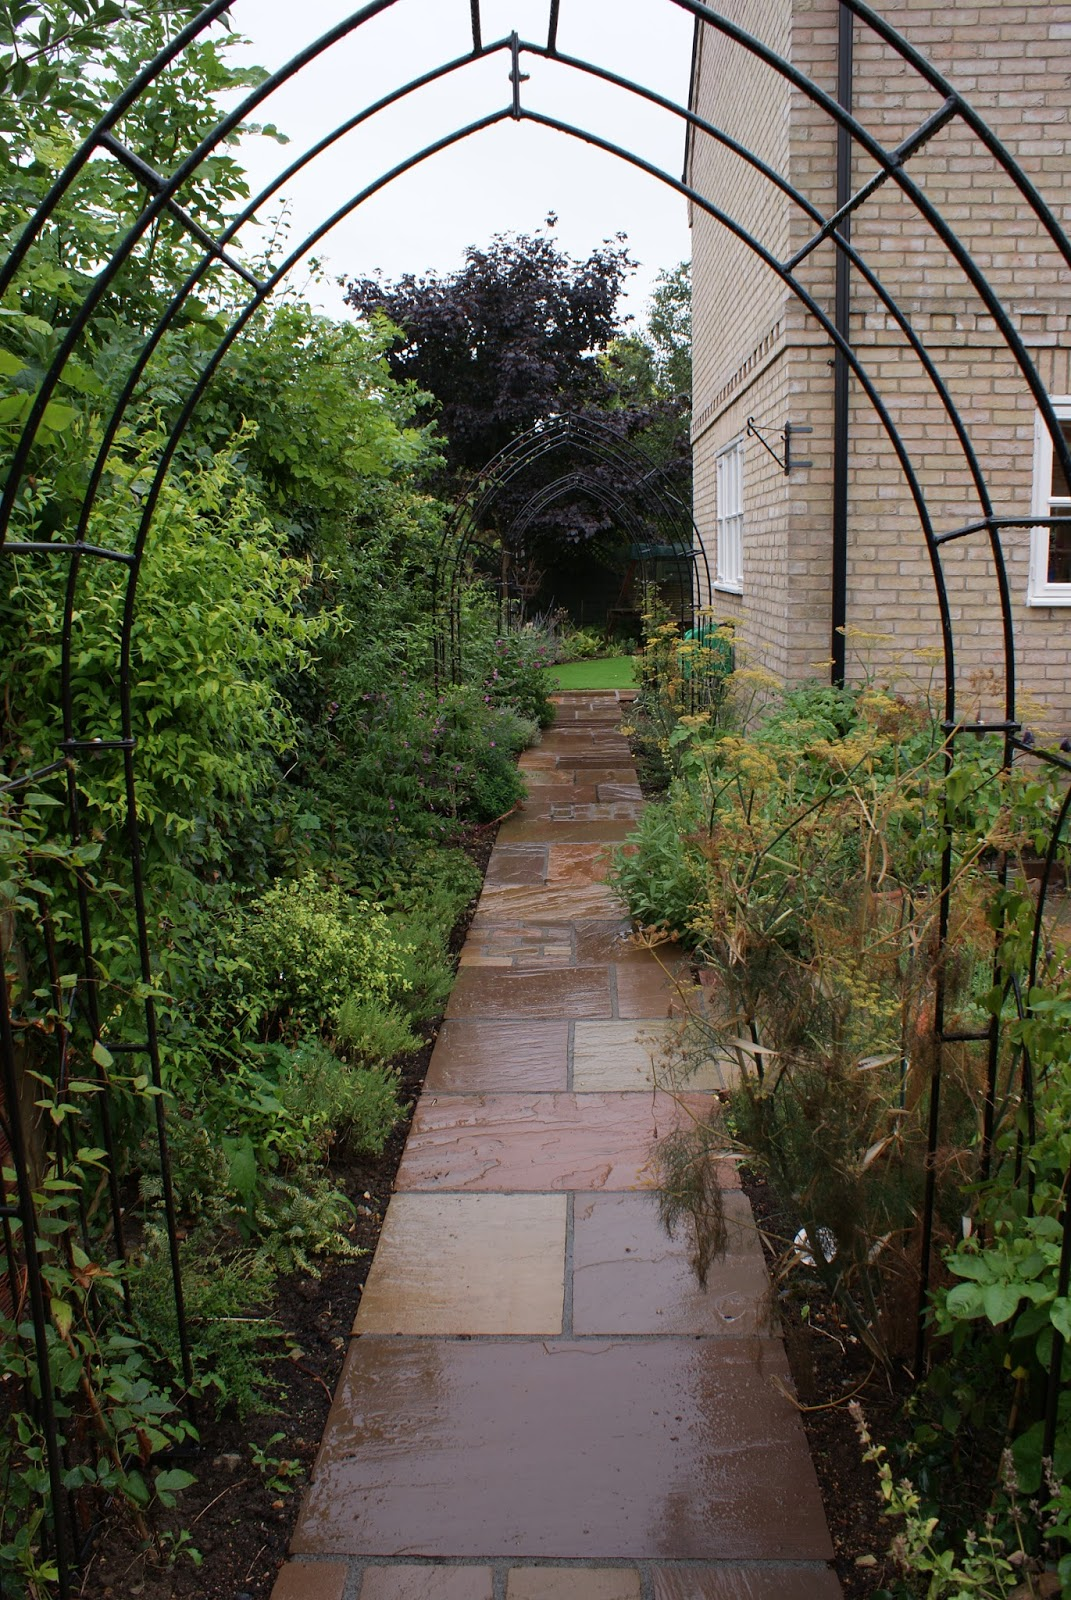 Town garden design in cambridge courtyard garden for Small narrow garden designs